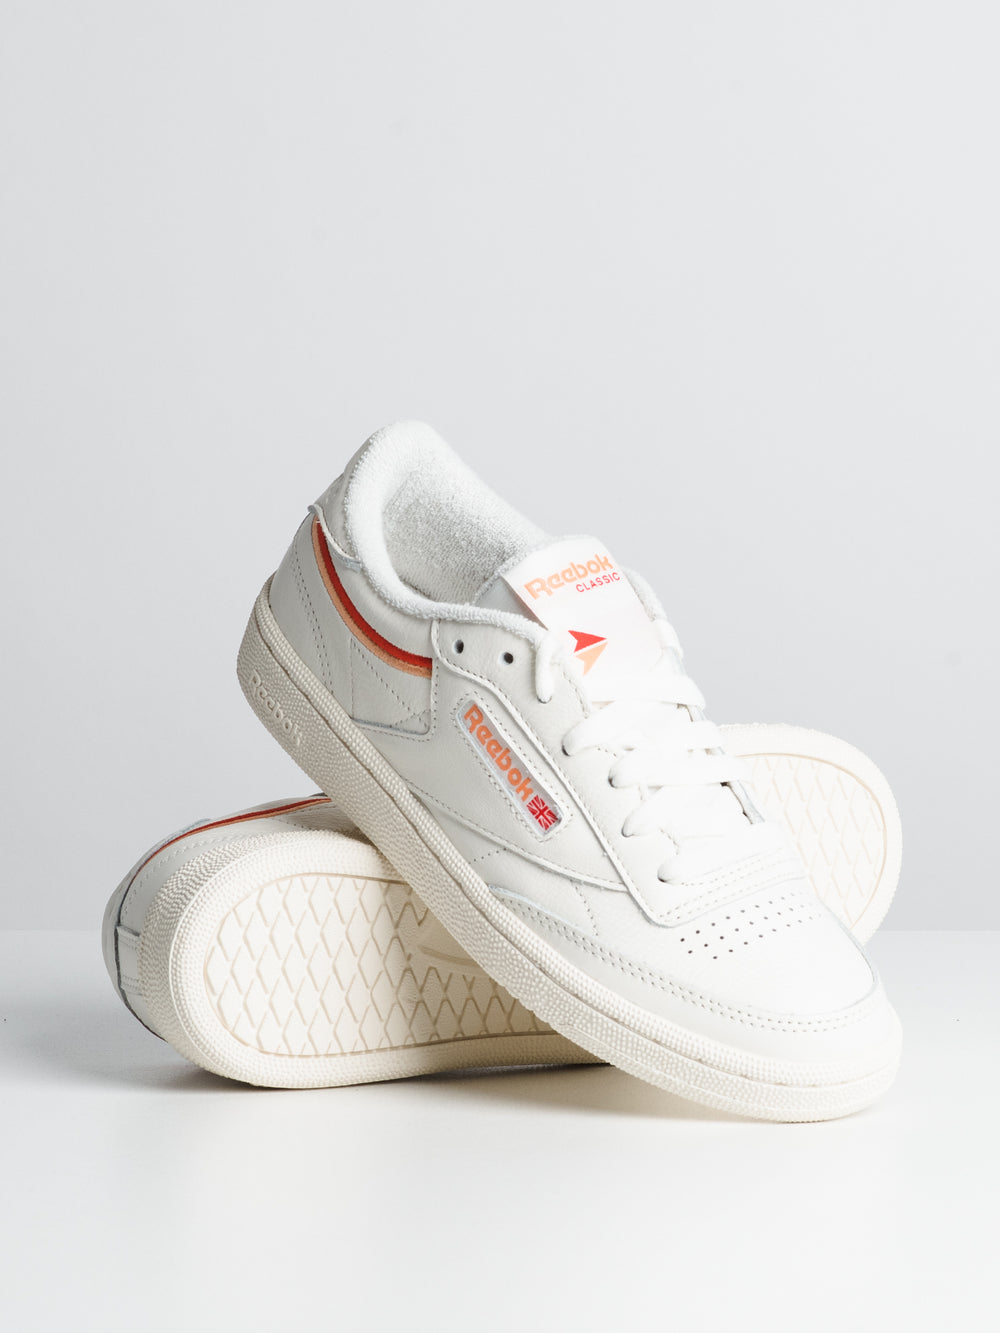 WOMENS CLUB C 85 - CHALK/ORANGE/RED